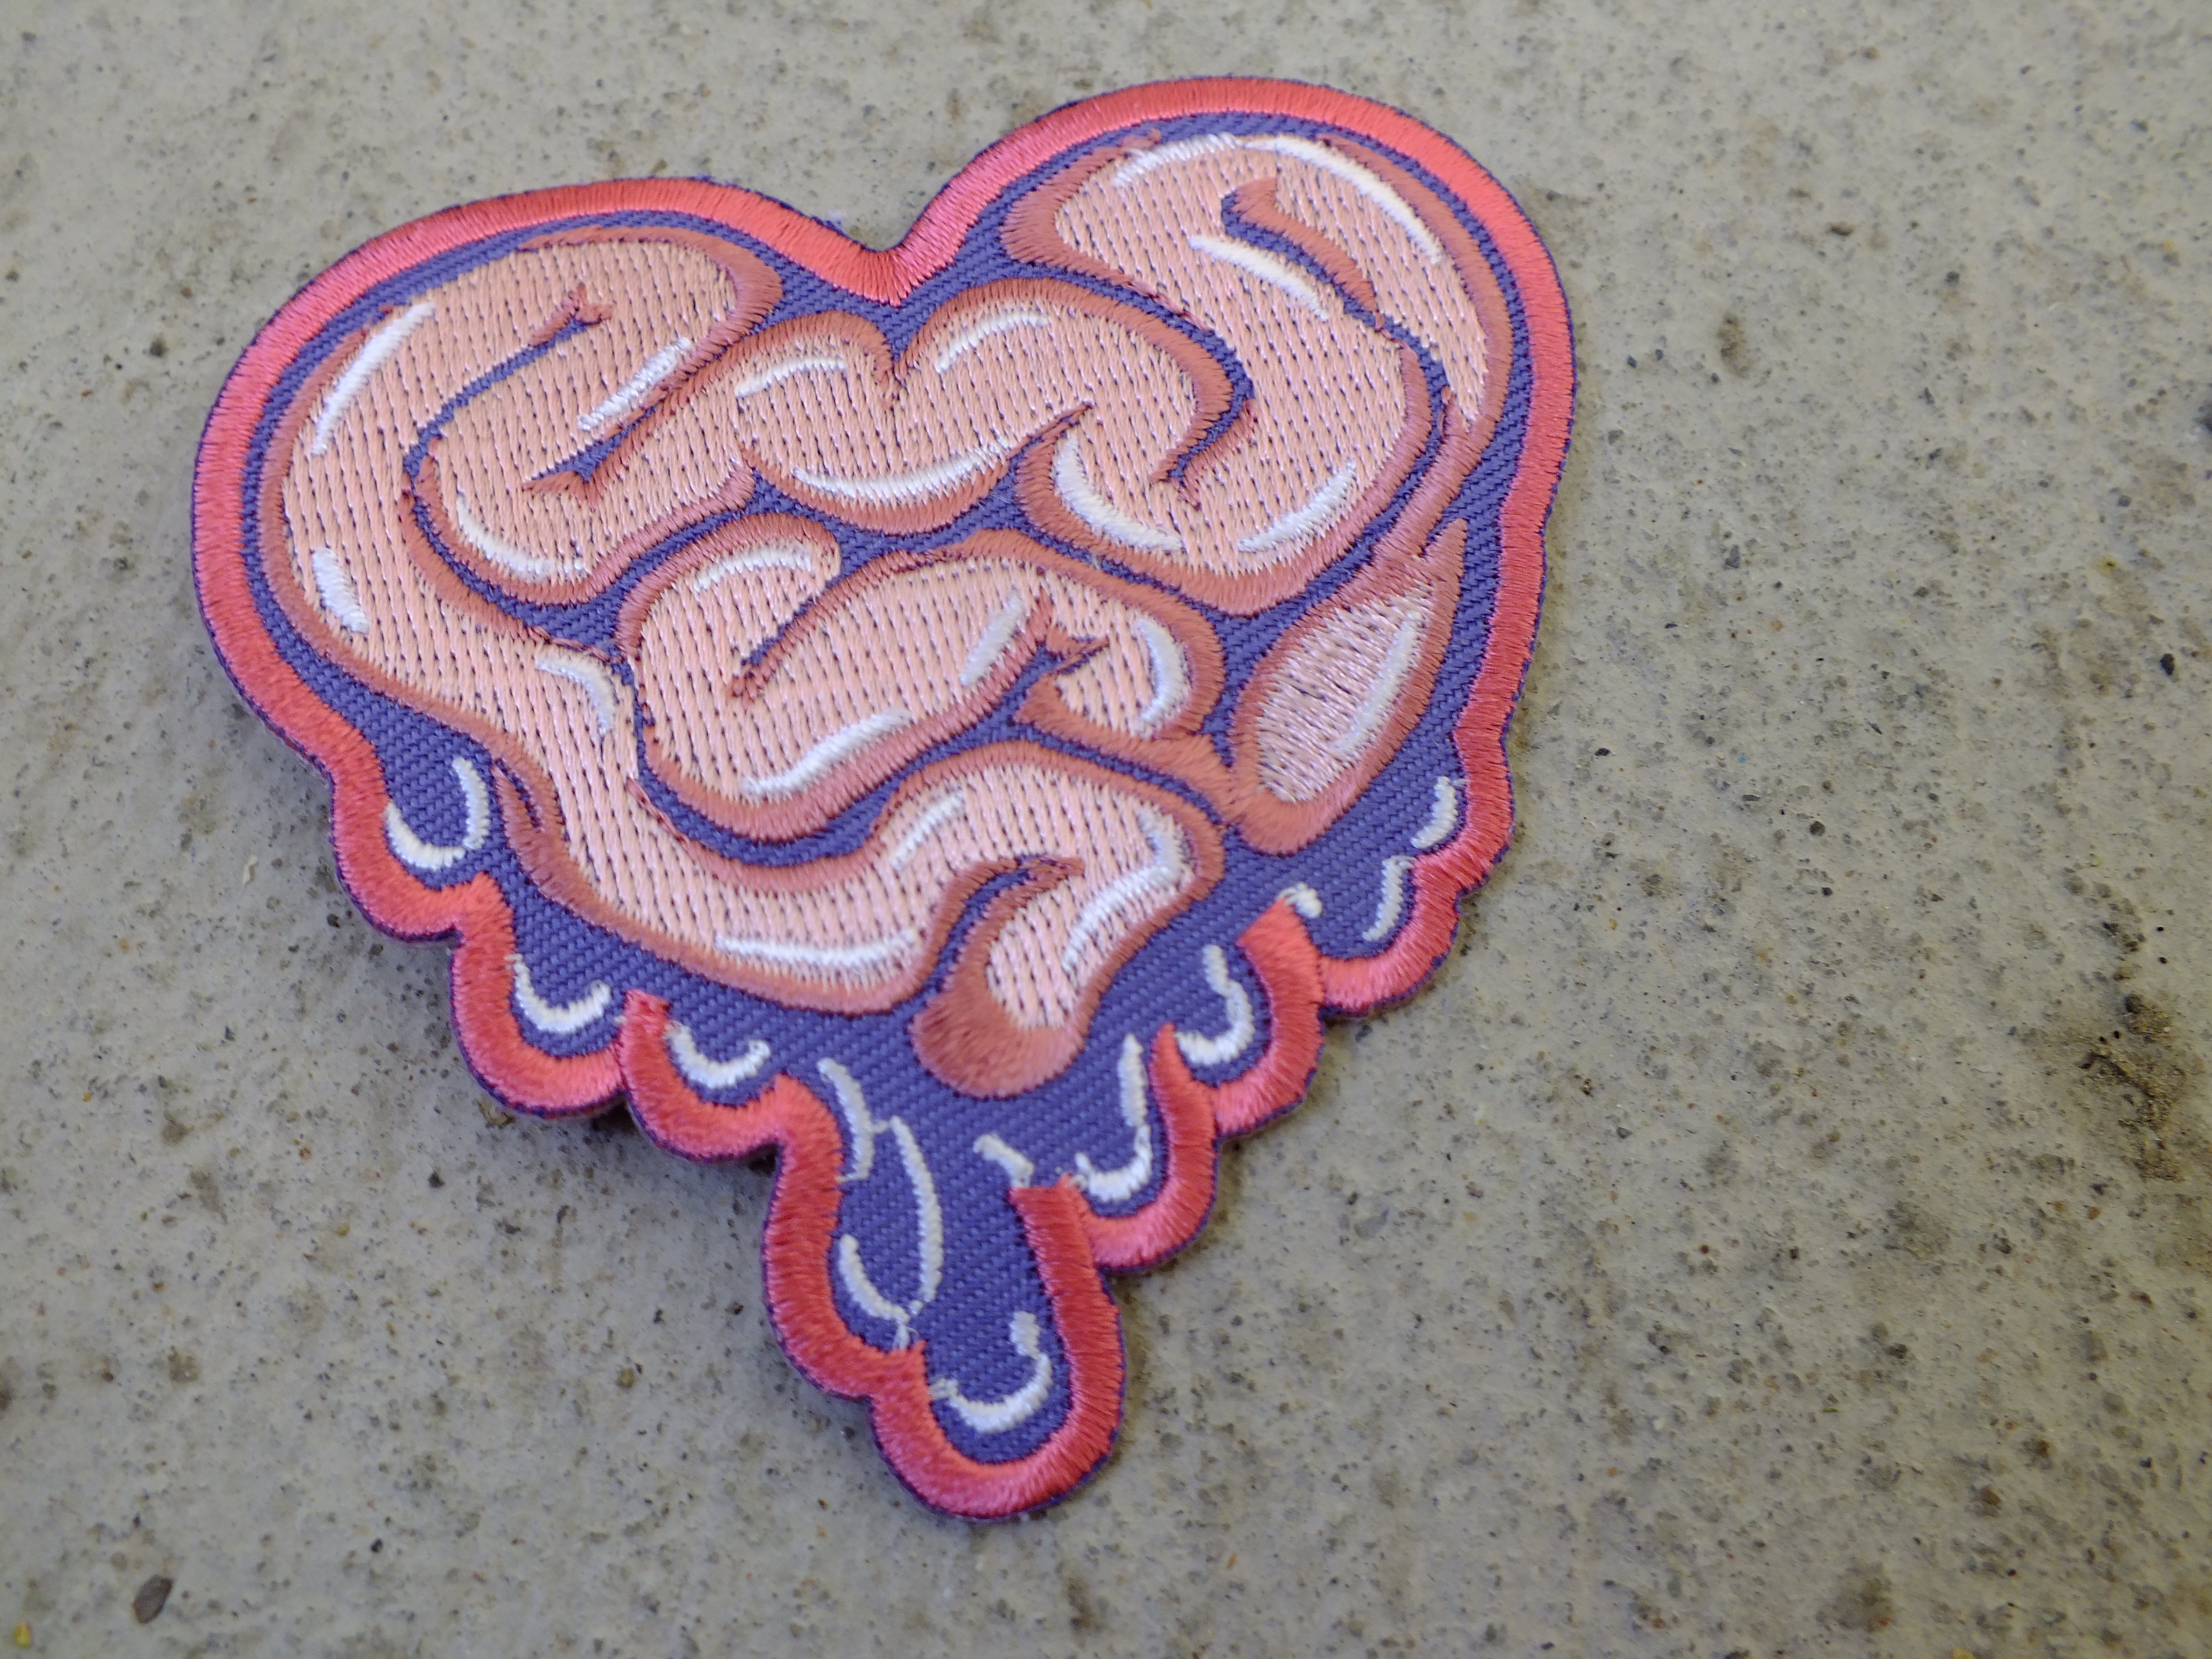 I Love Candy Gore Embroidered Iron On Patch Lunastarbright Buy the biggest brands for the best prices; luna starbright